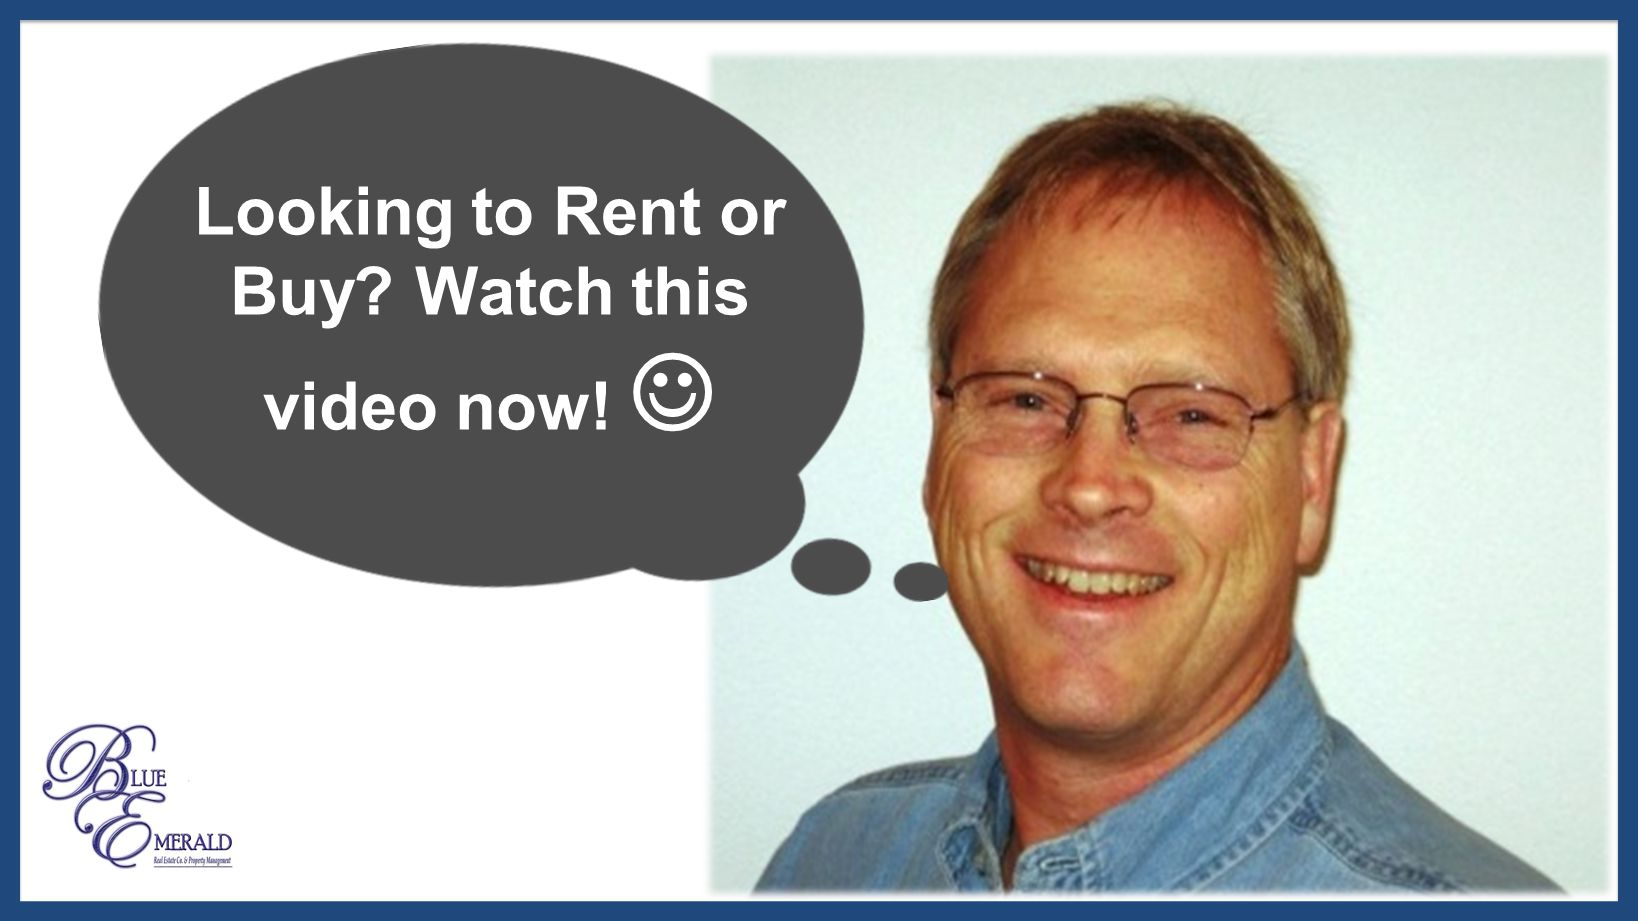 Looking to Rent or Buy Watch this video now!